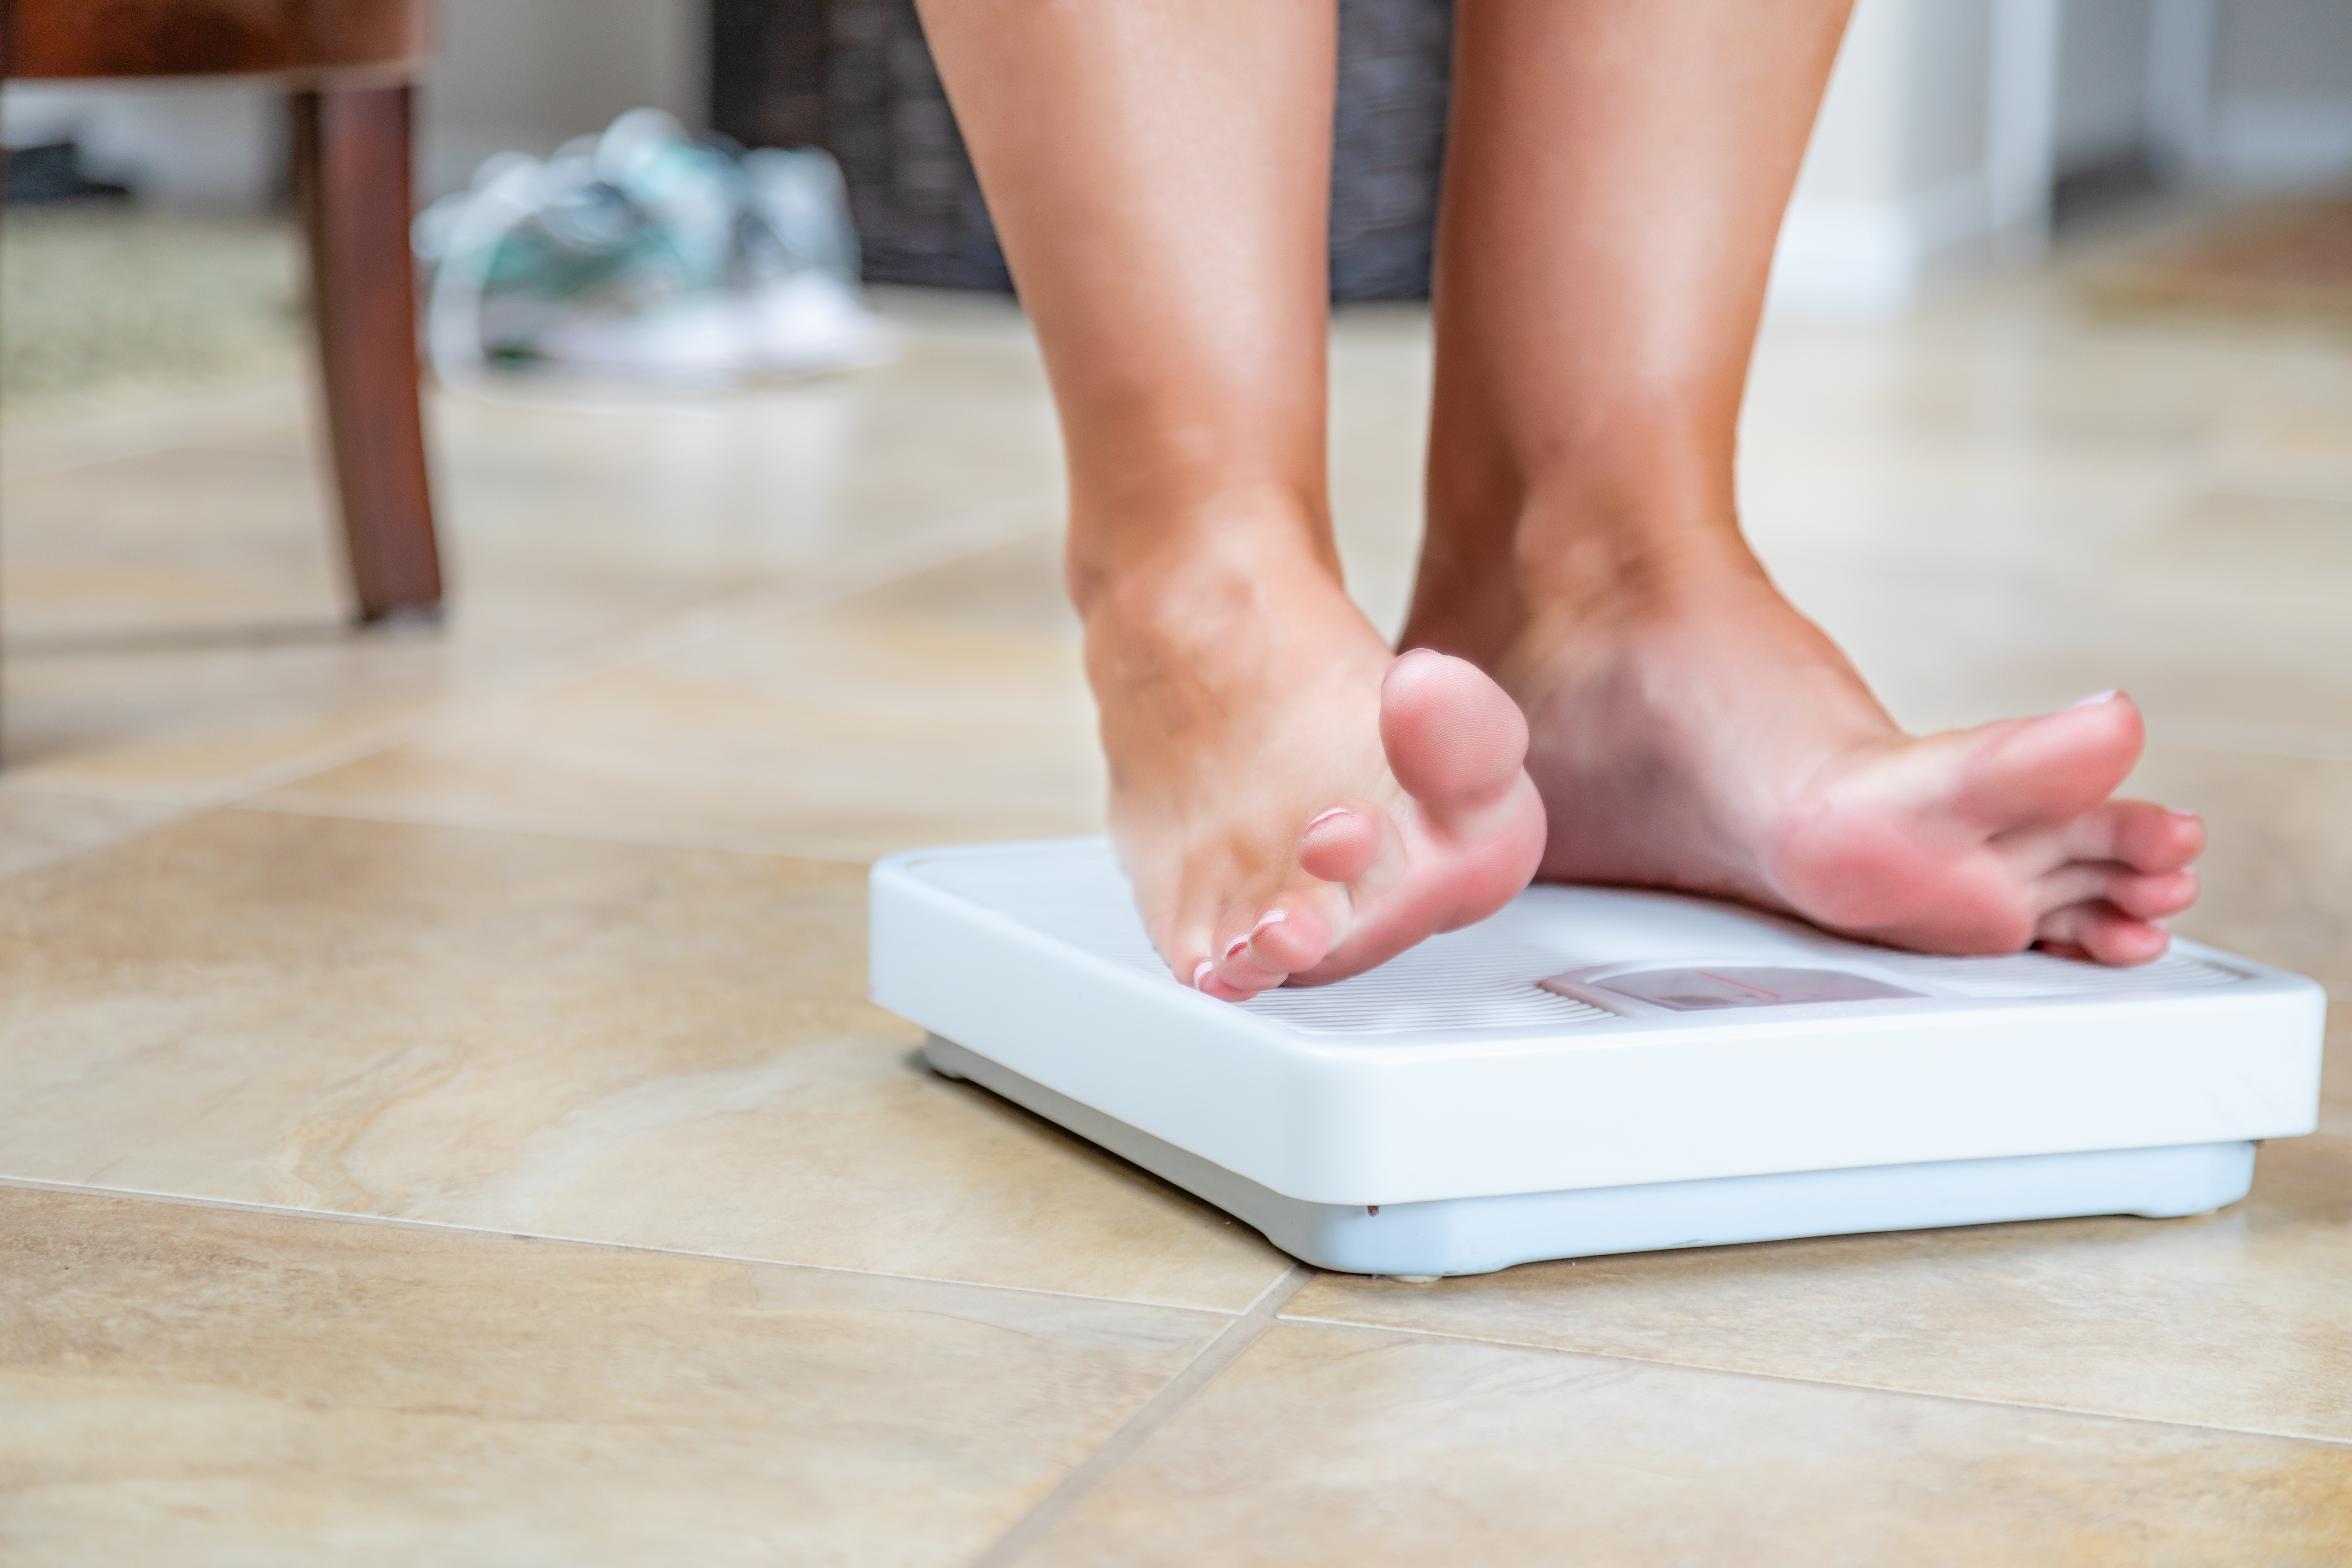 woman who lost weight weighing herself